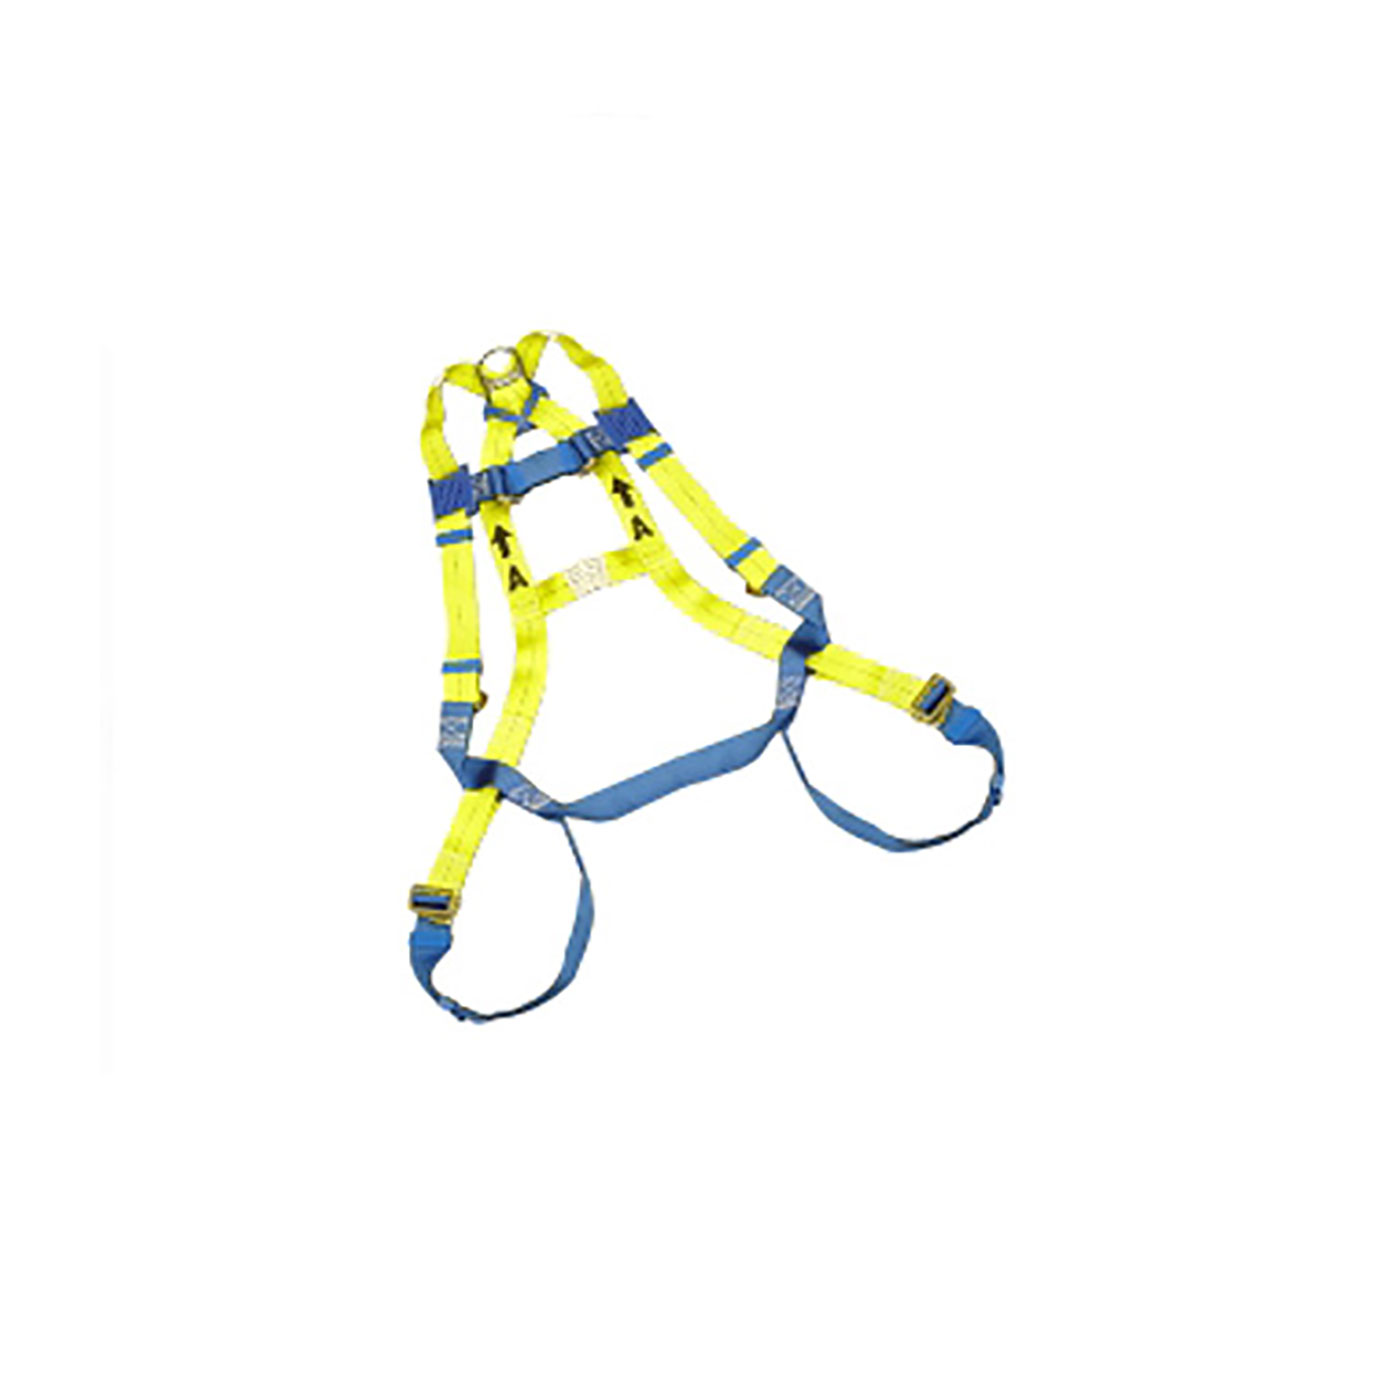 Workhorse Full Body Harness with Back D-Ring